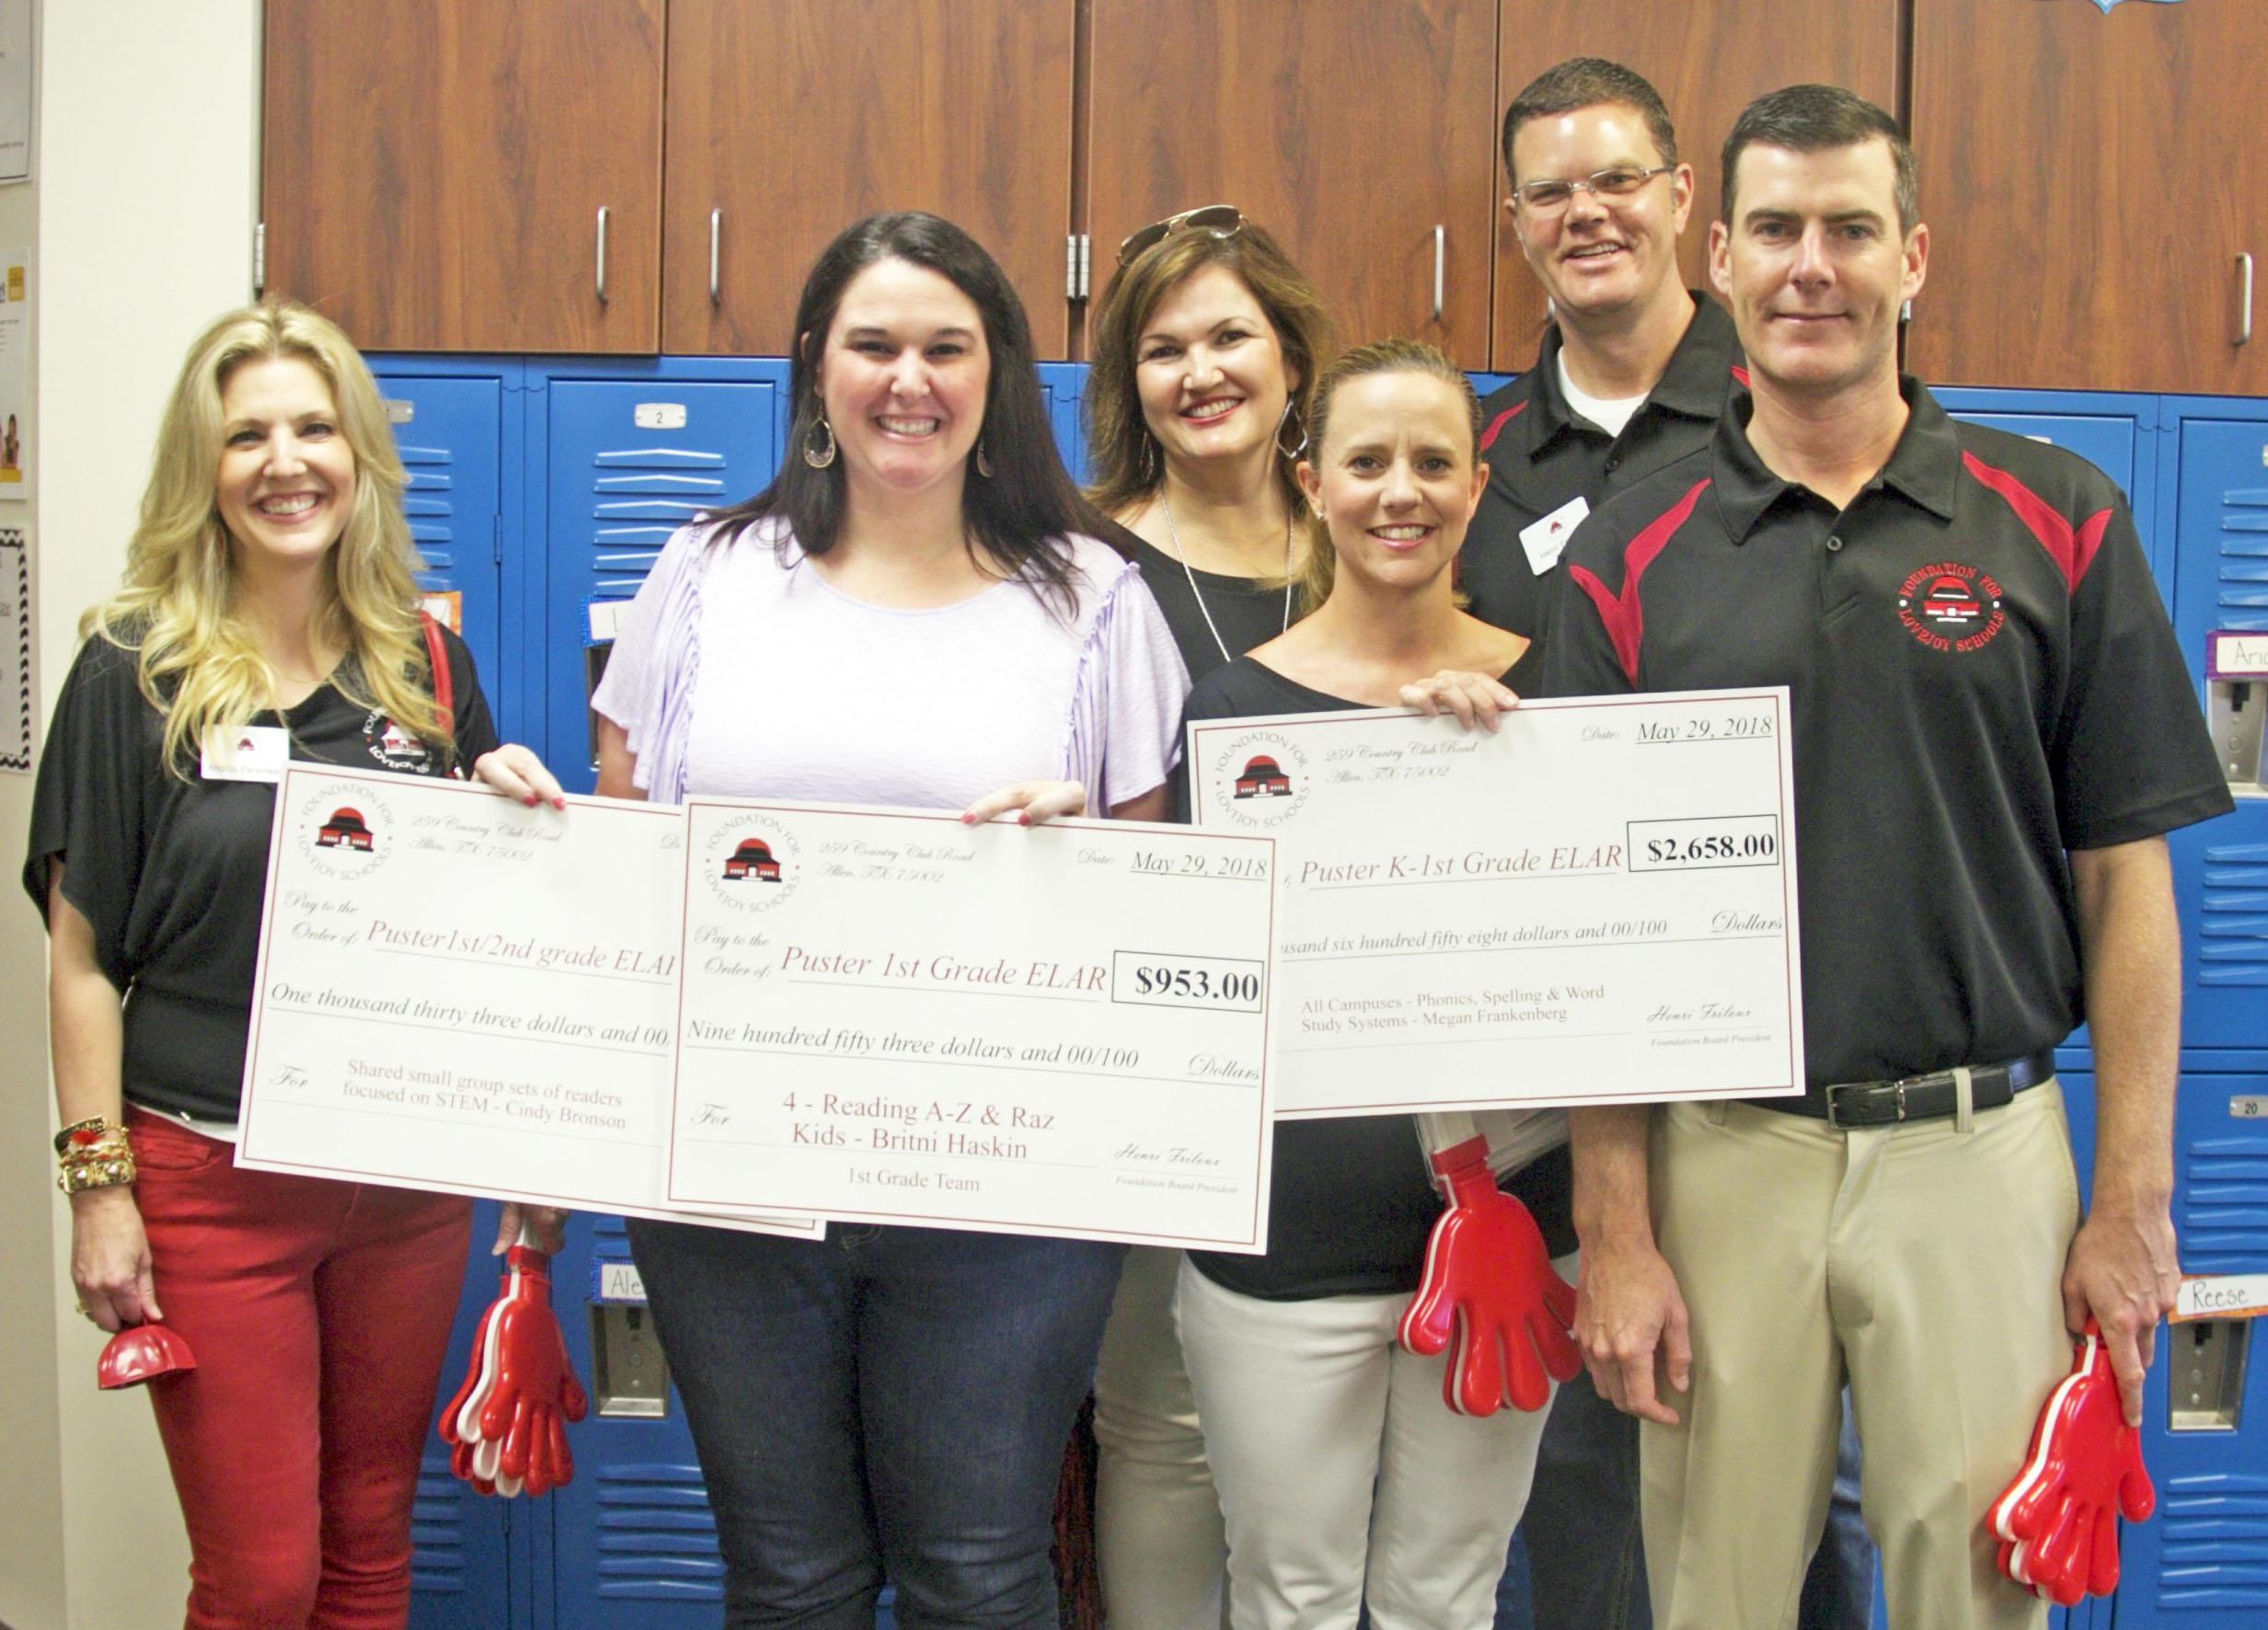 Board of Directors of the Foundation for Lovejoy Schools Grant Patrol with a teacher who received a grant at Puster Elementary.